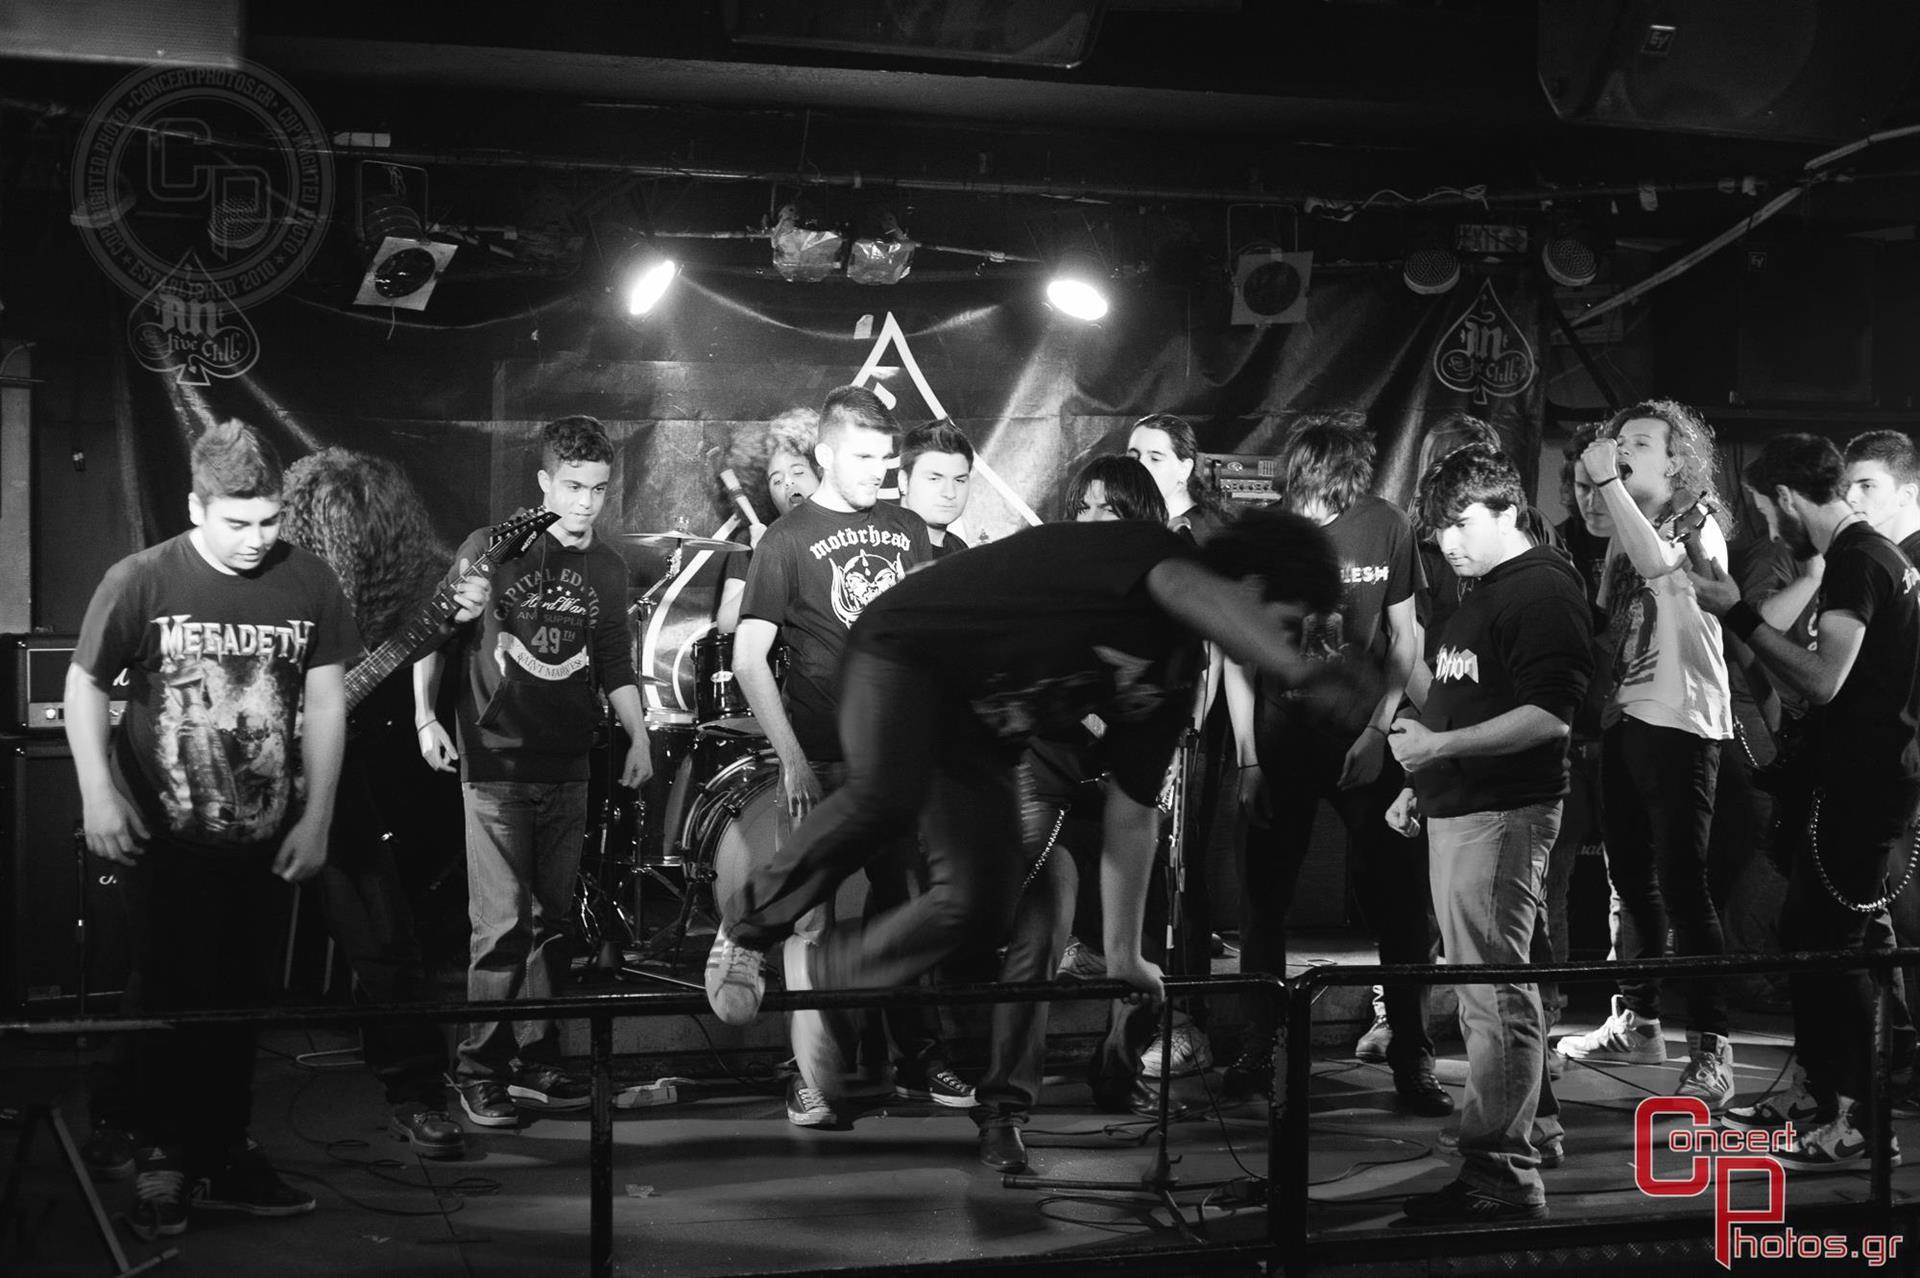 Battle Of The Bands Athens - Leg 3- photographer:  - ConcertPhotos - 20150104_2335_27